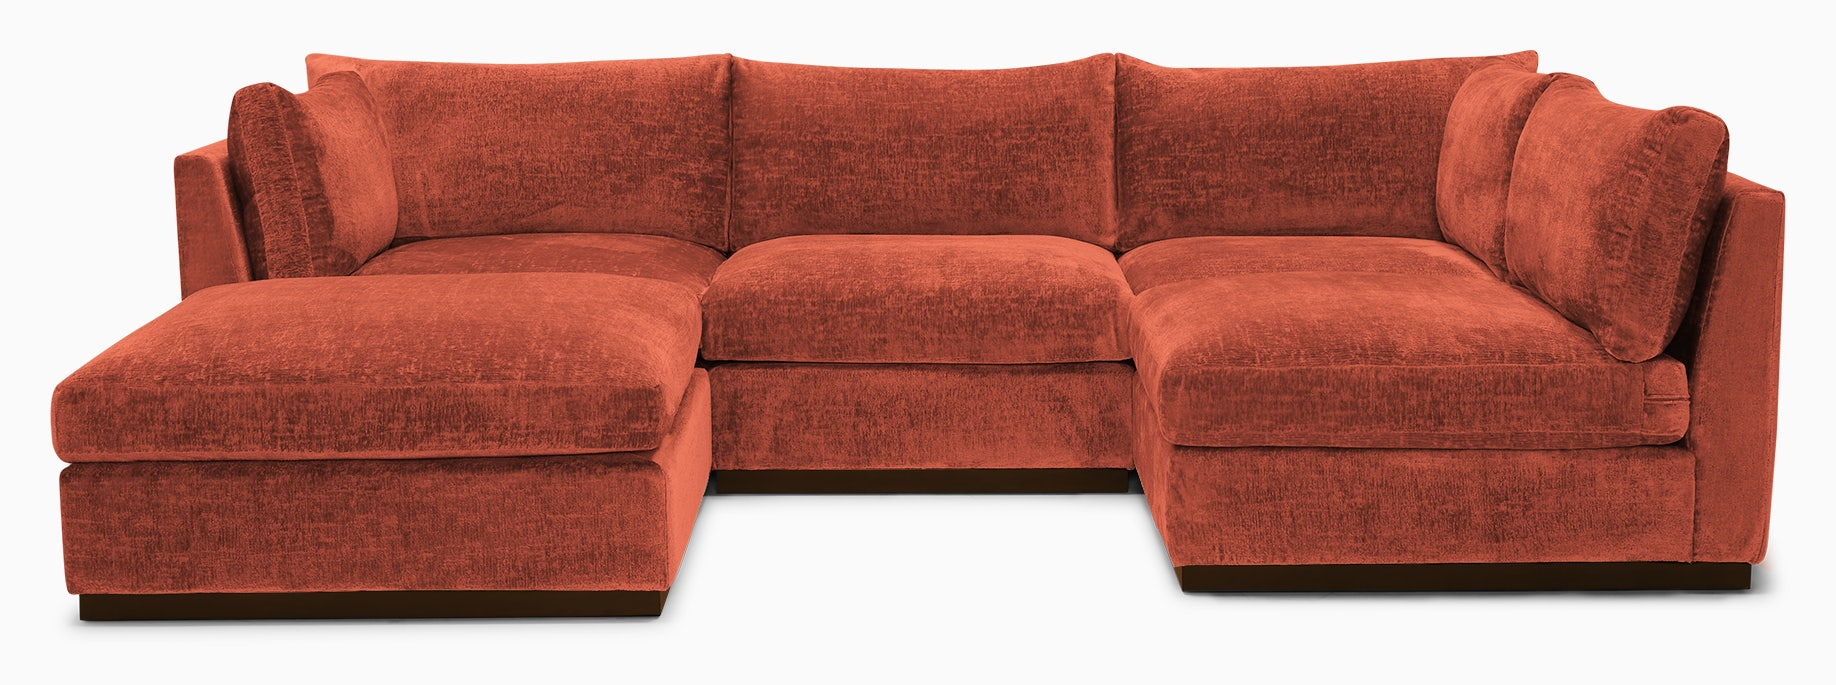 holt armless sofa sectional %285 piece%29 key largo coral